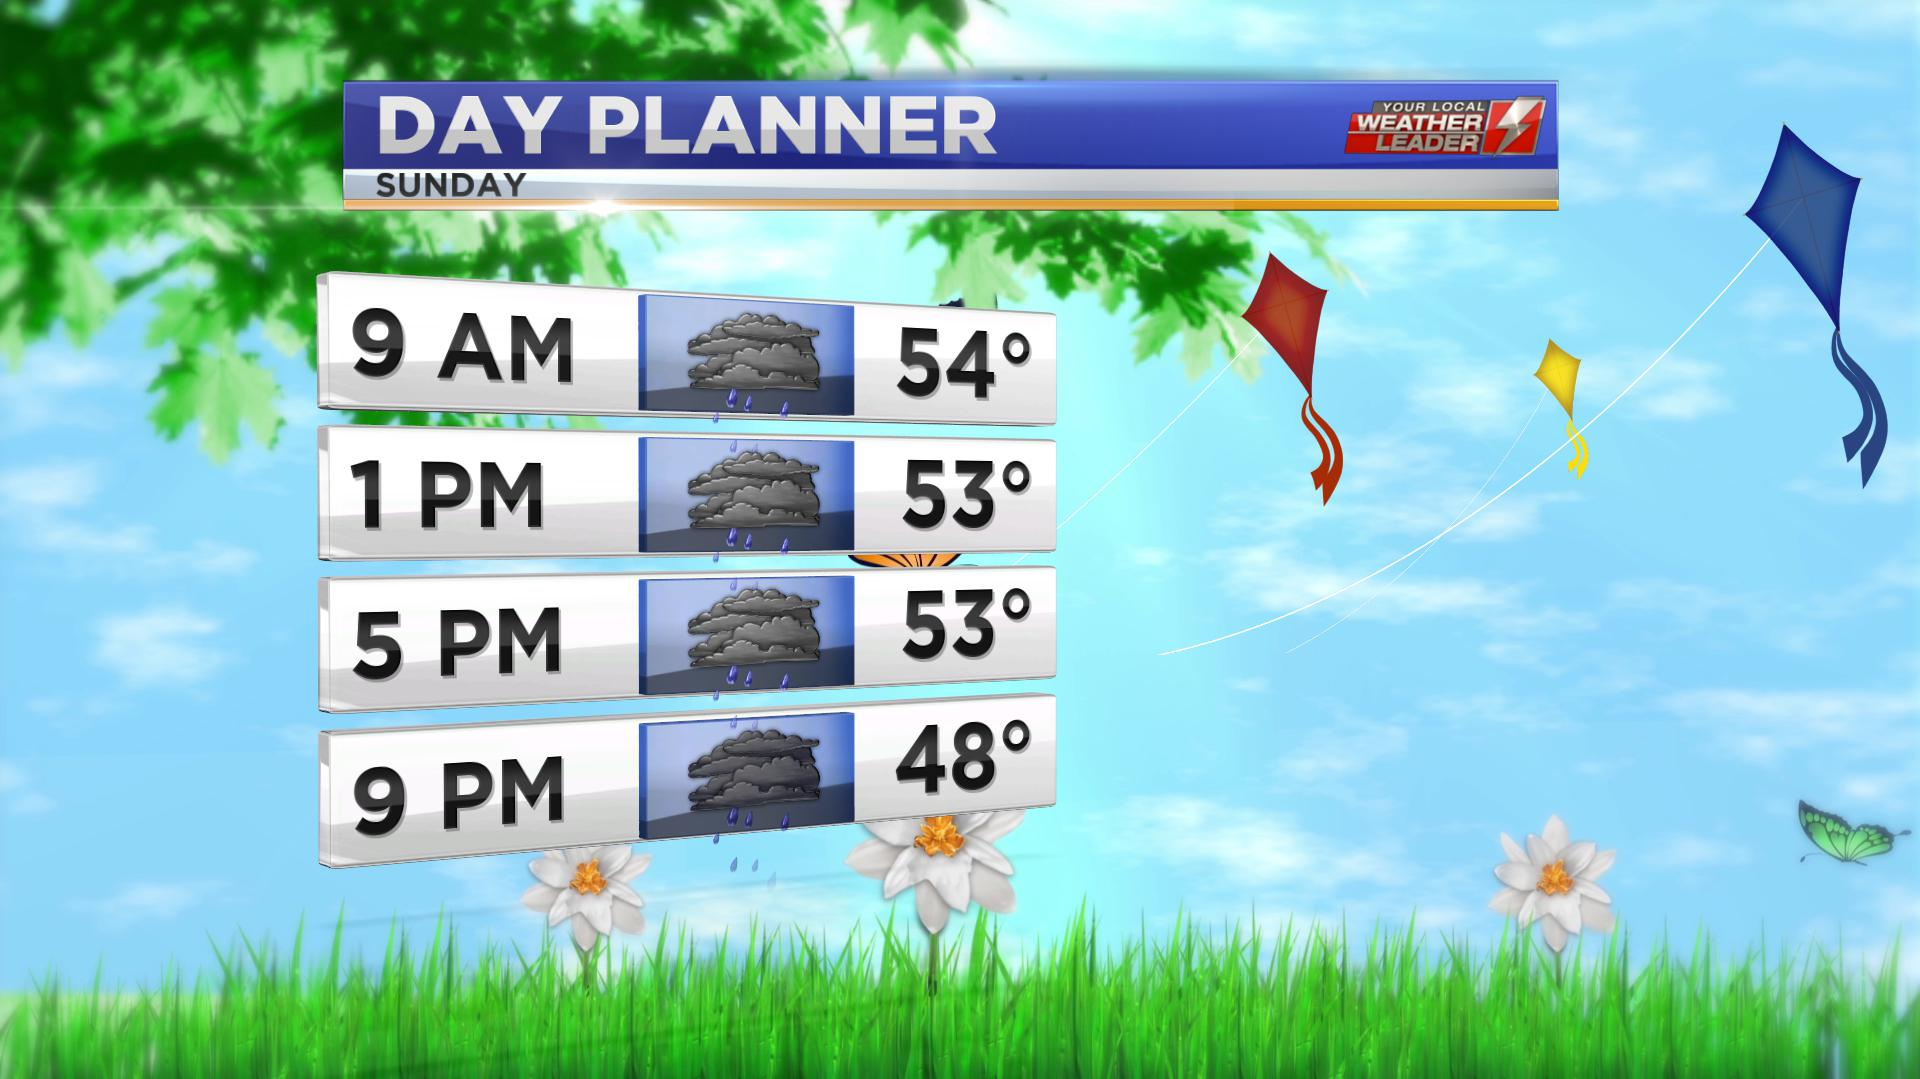 Day Planner Forecast Sunday 12 May 2019